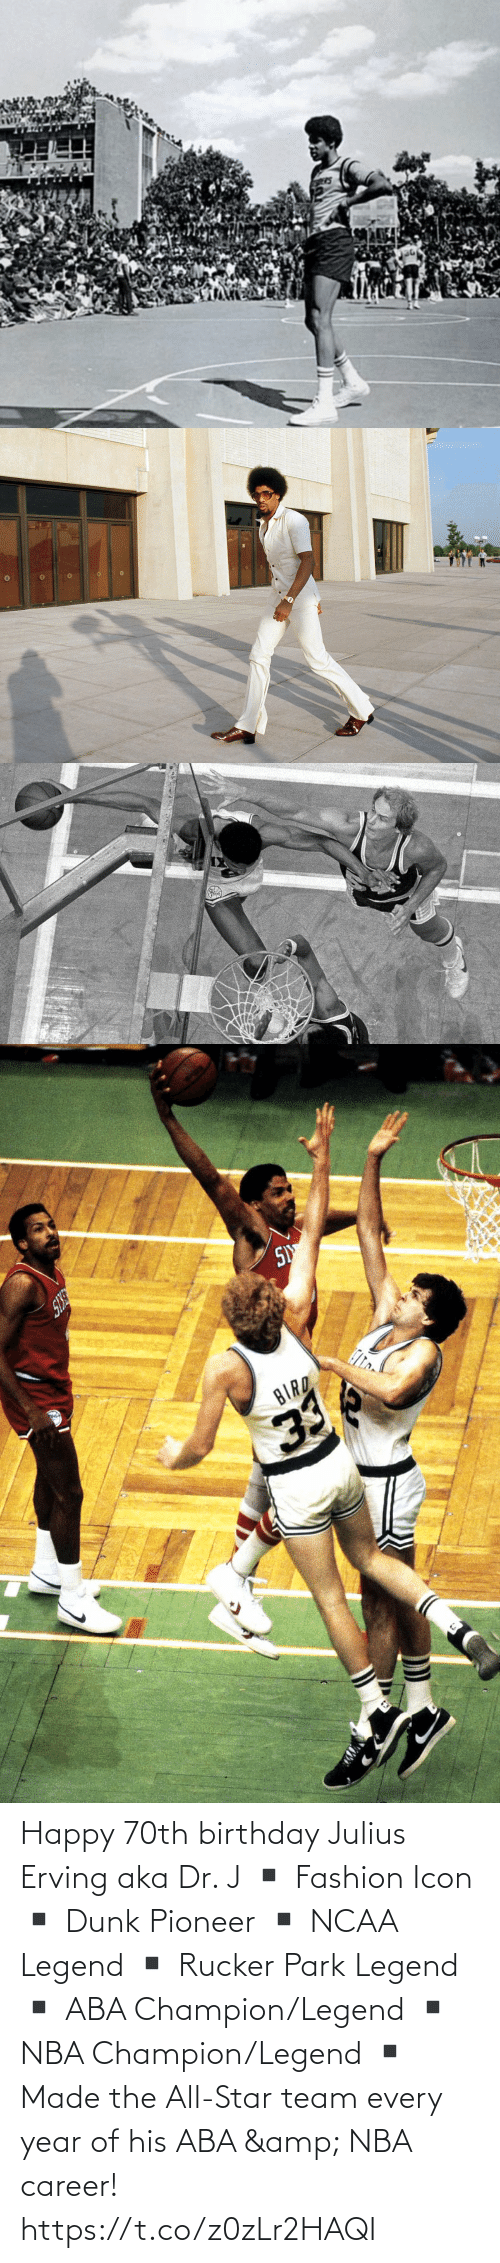 icon: Happy 70th birthday Julius Erving aka Dr. J  ▪️ Fashion Icon ▪️ Dunk Pioneer ▪️ NCAA Legend ▪️ Rucker Park Legend ▪️ ABA Champion/Legend ▪️ NBA Champion/Legend ▪️ Made the All-Star team every year of his ABA & NBA career! https://t.co/z0zLr2HAQI